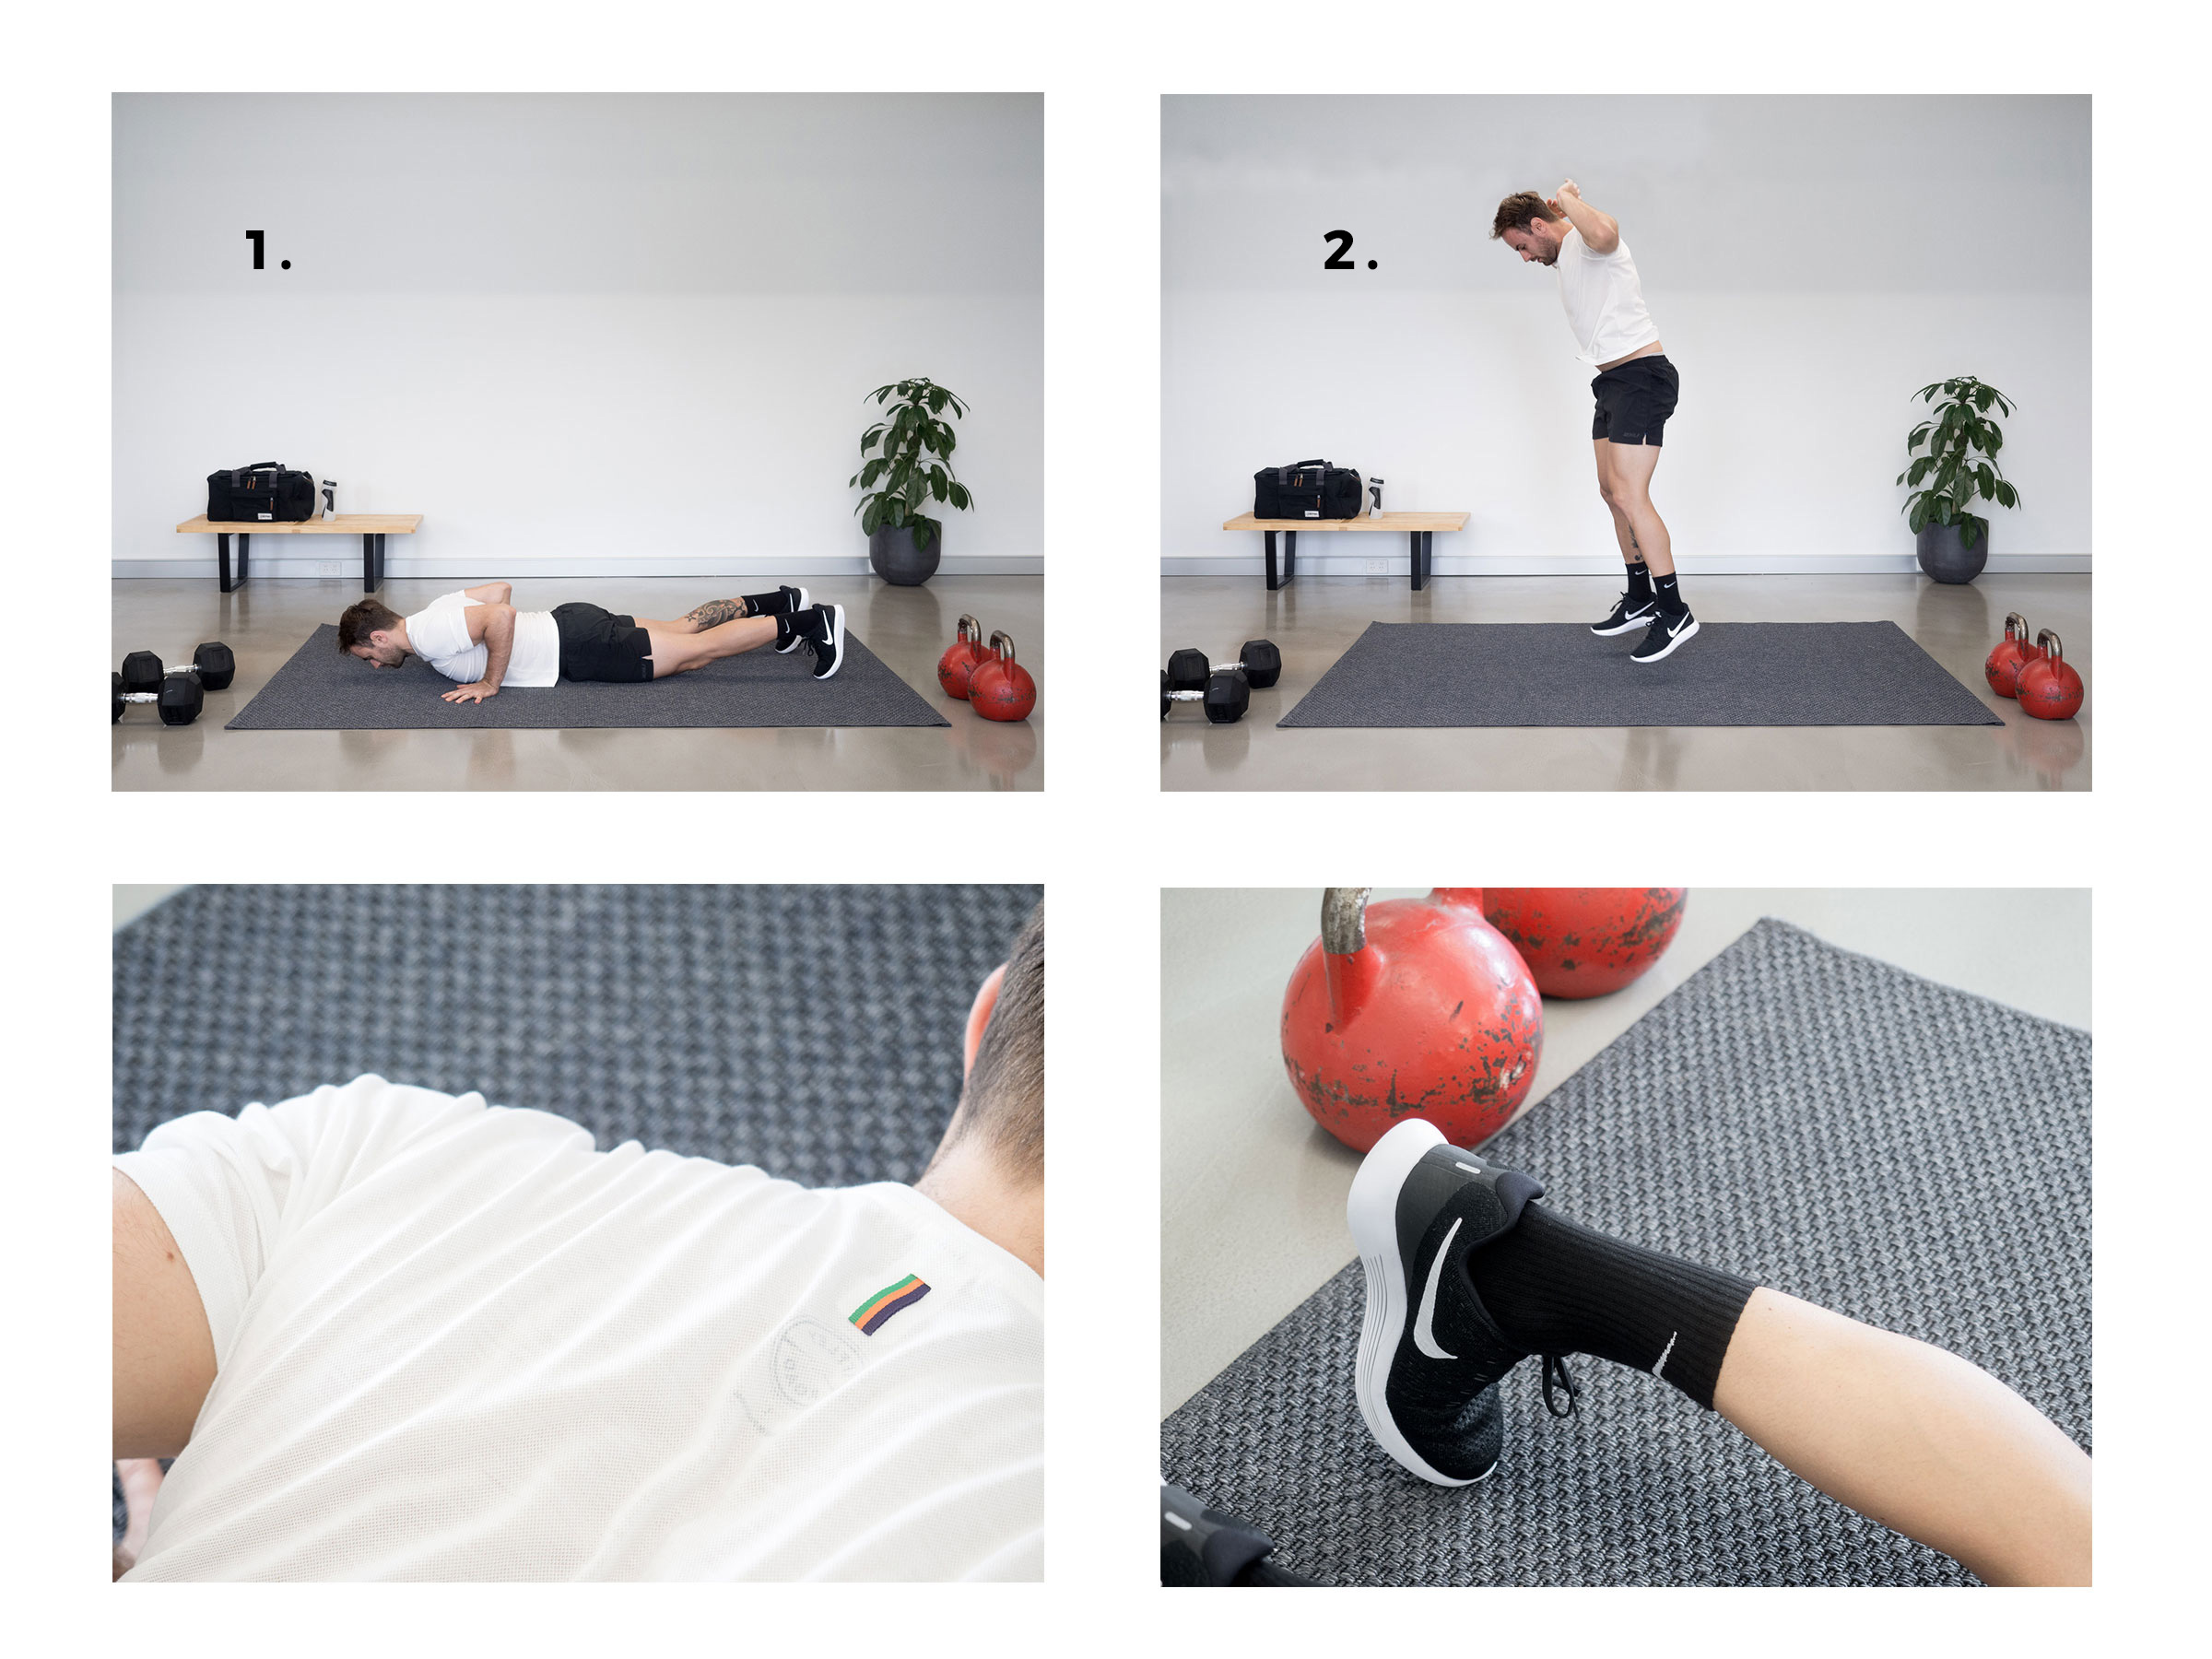 A Simple Workout Routine When You're Low On Space & Equipment